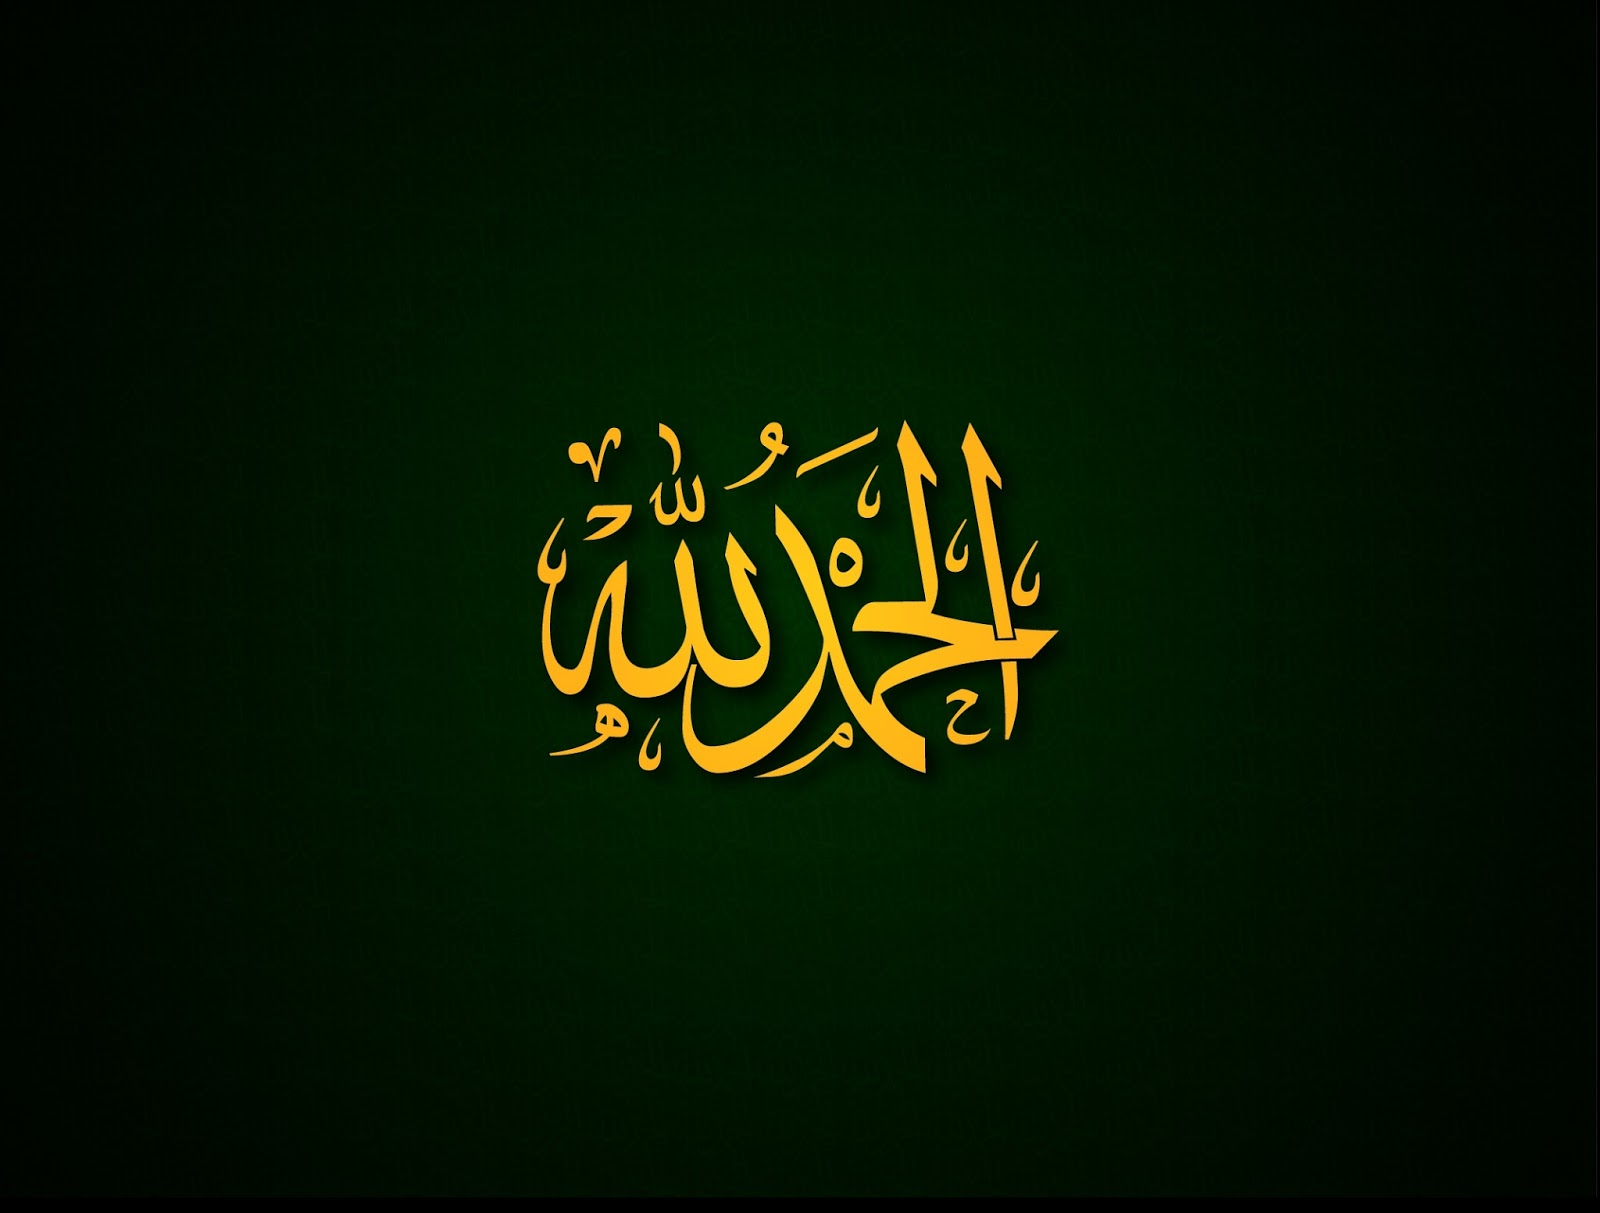 Islamic Calligraphy Hd Wallpapers Sunni Multimedia Urdu